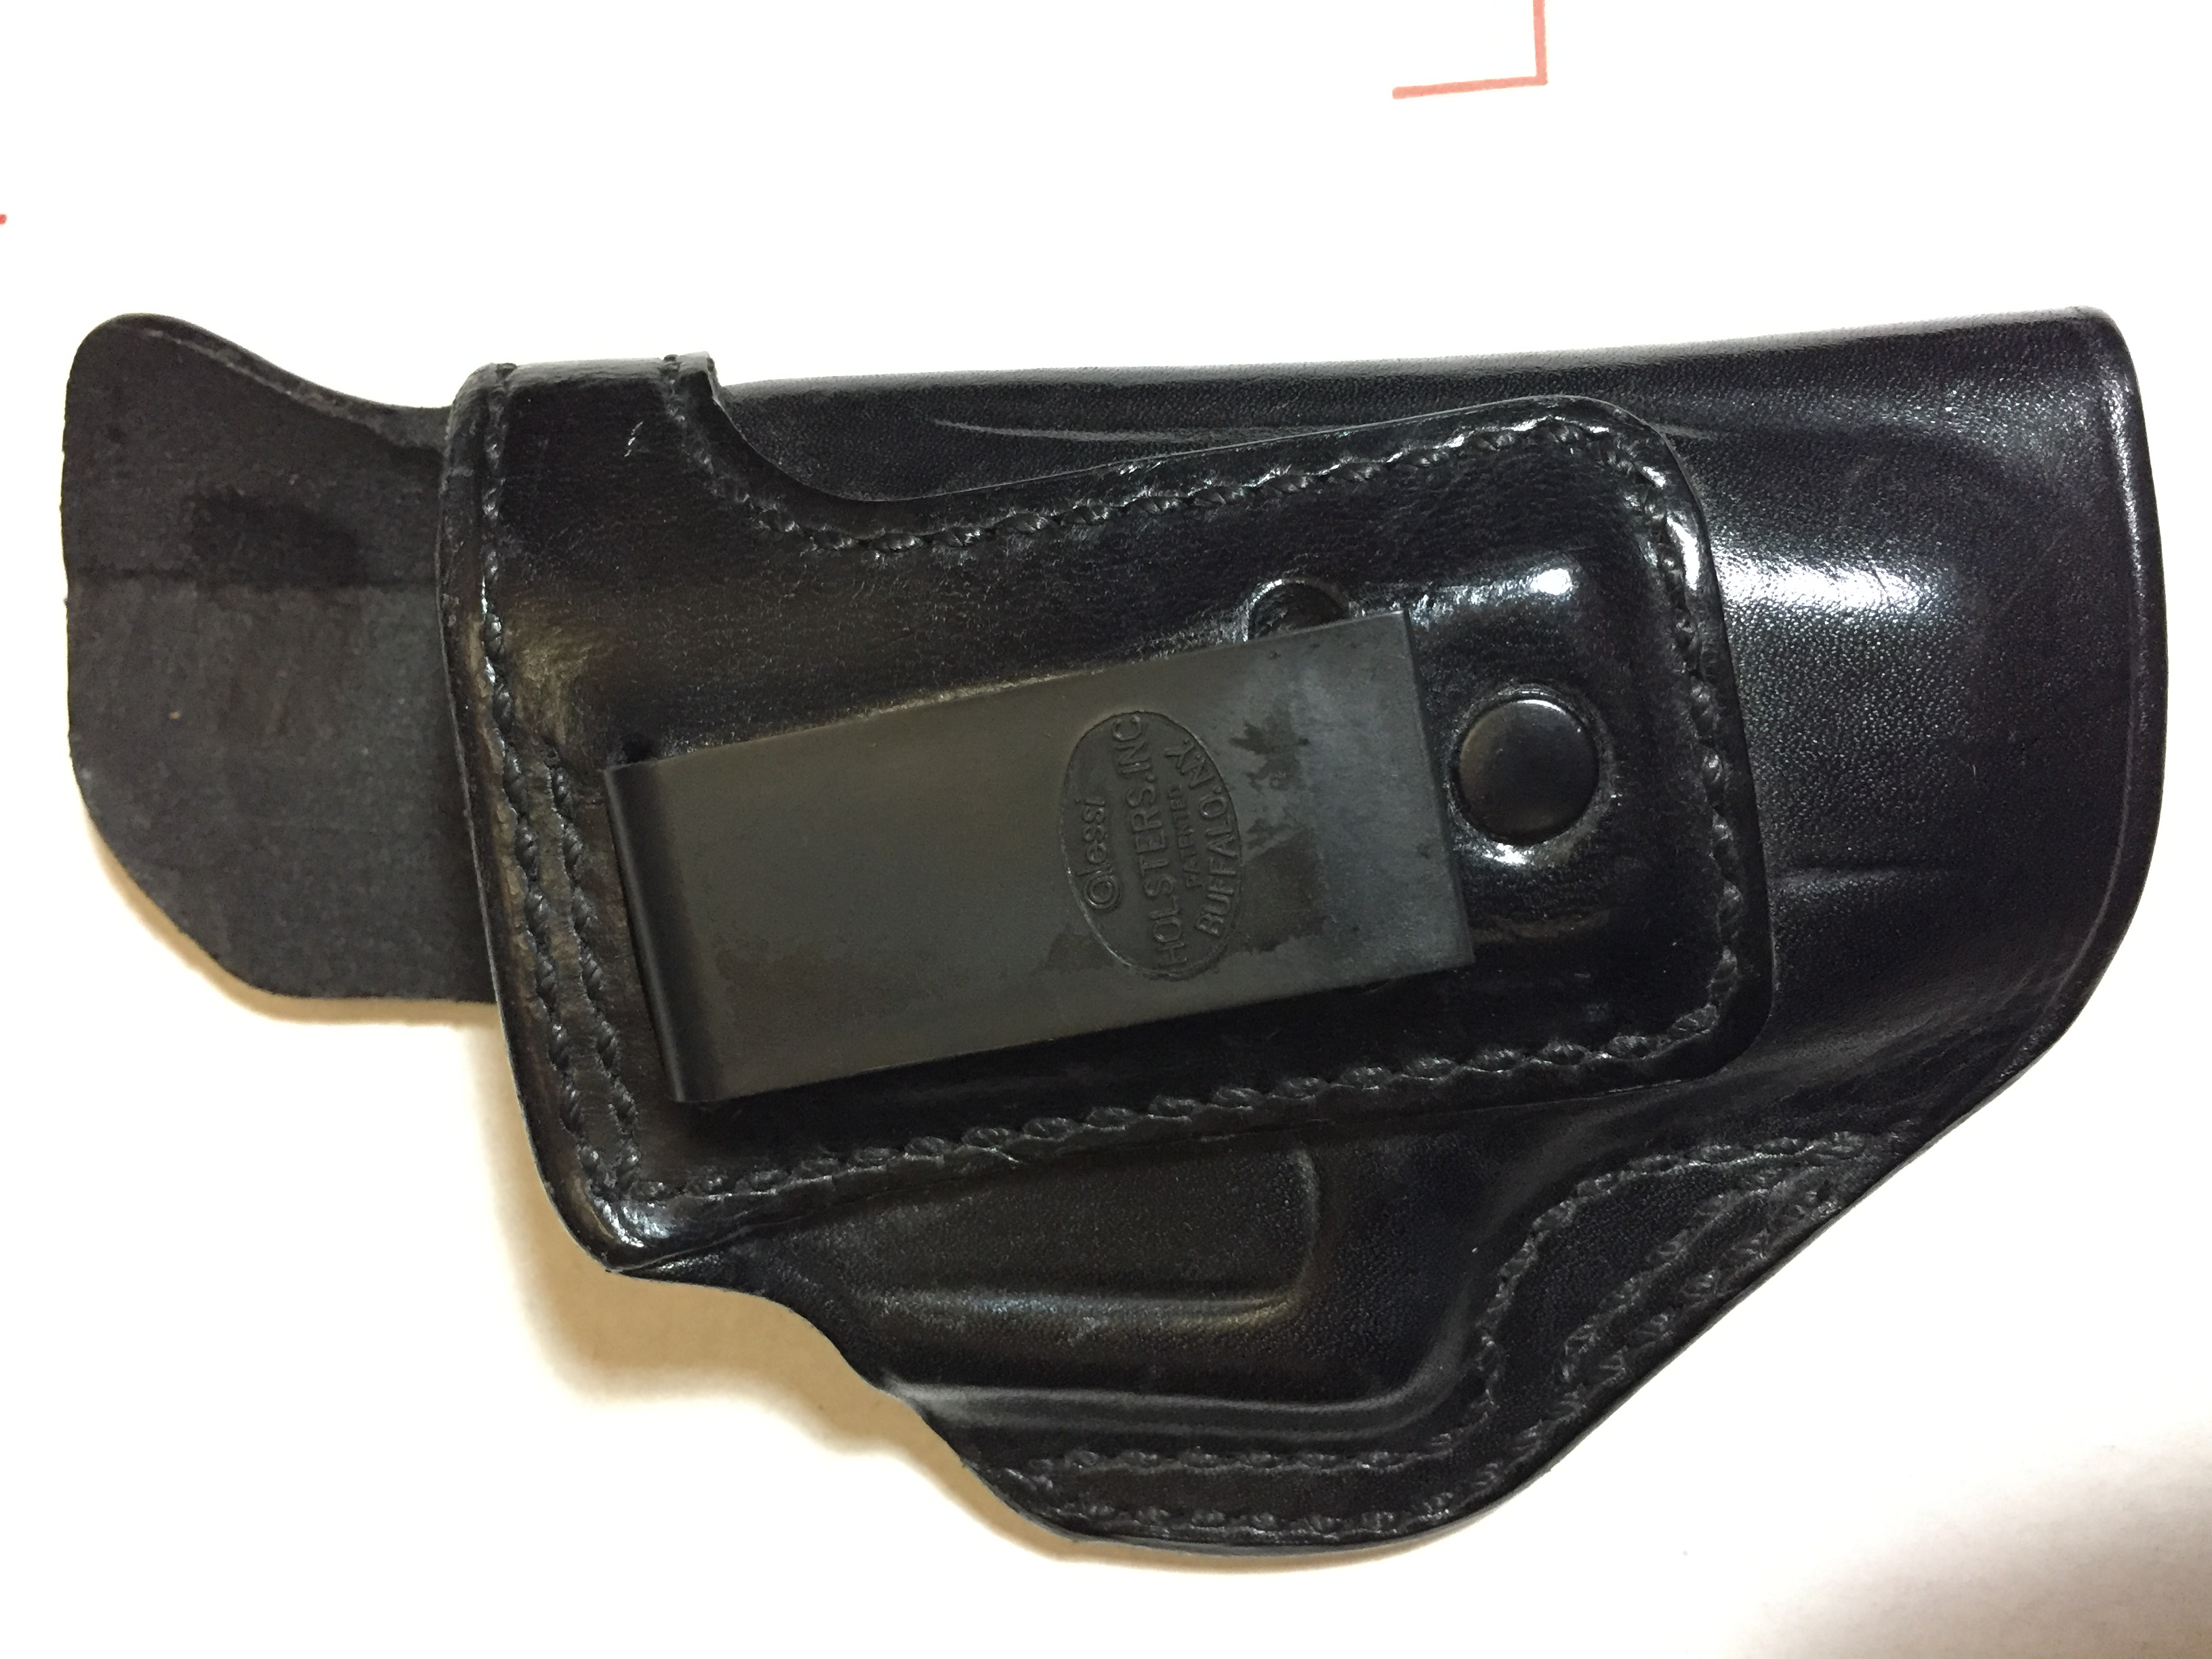 WTS: Several Milt Sparks holsters and a belt-img_0373.jpg